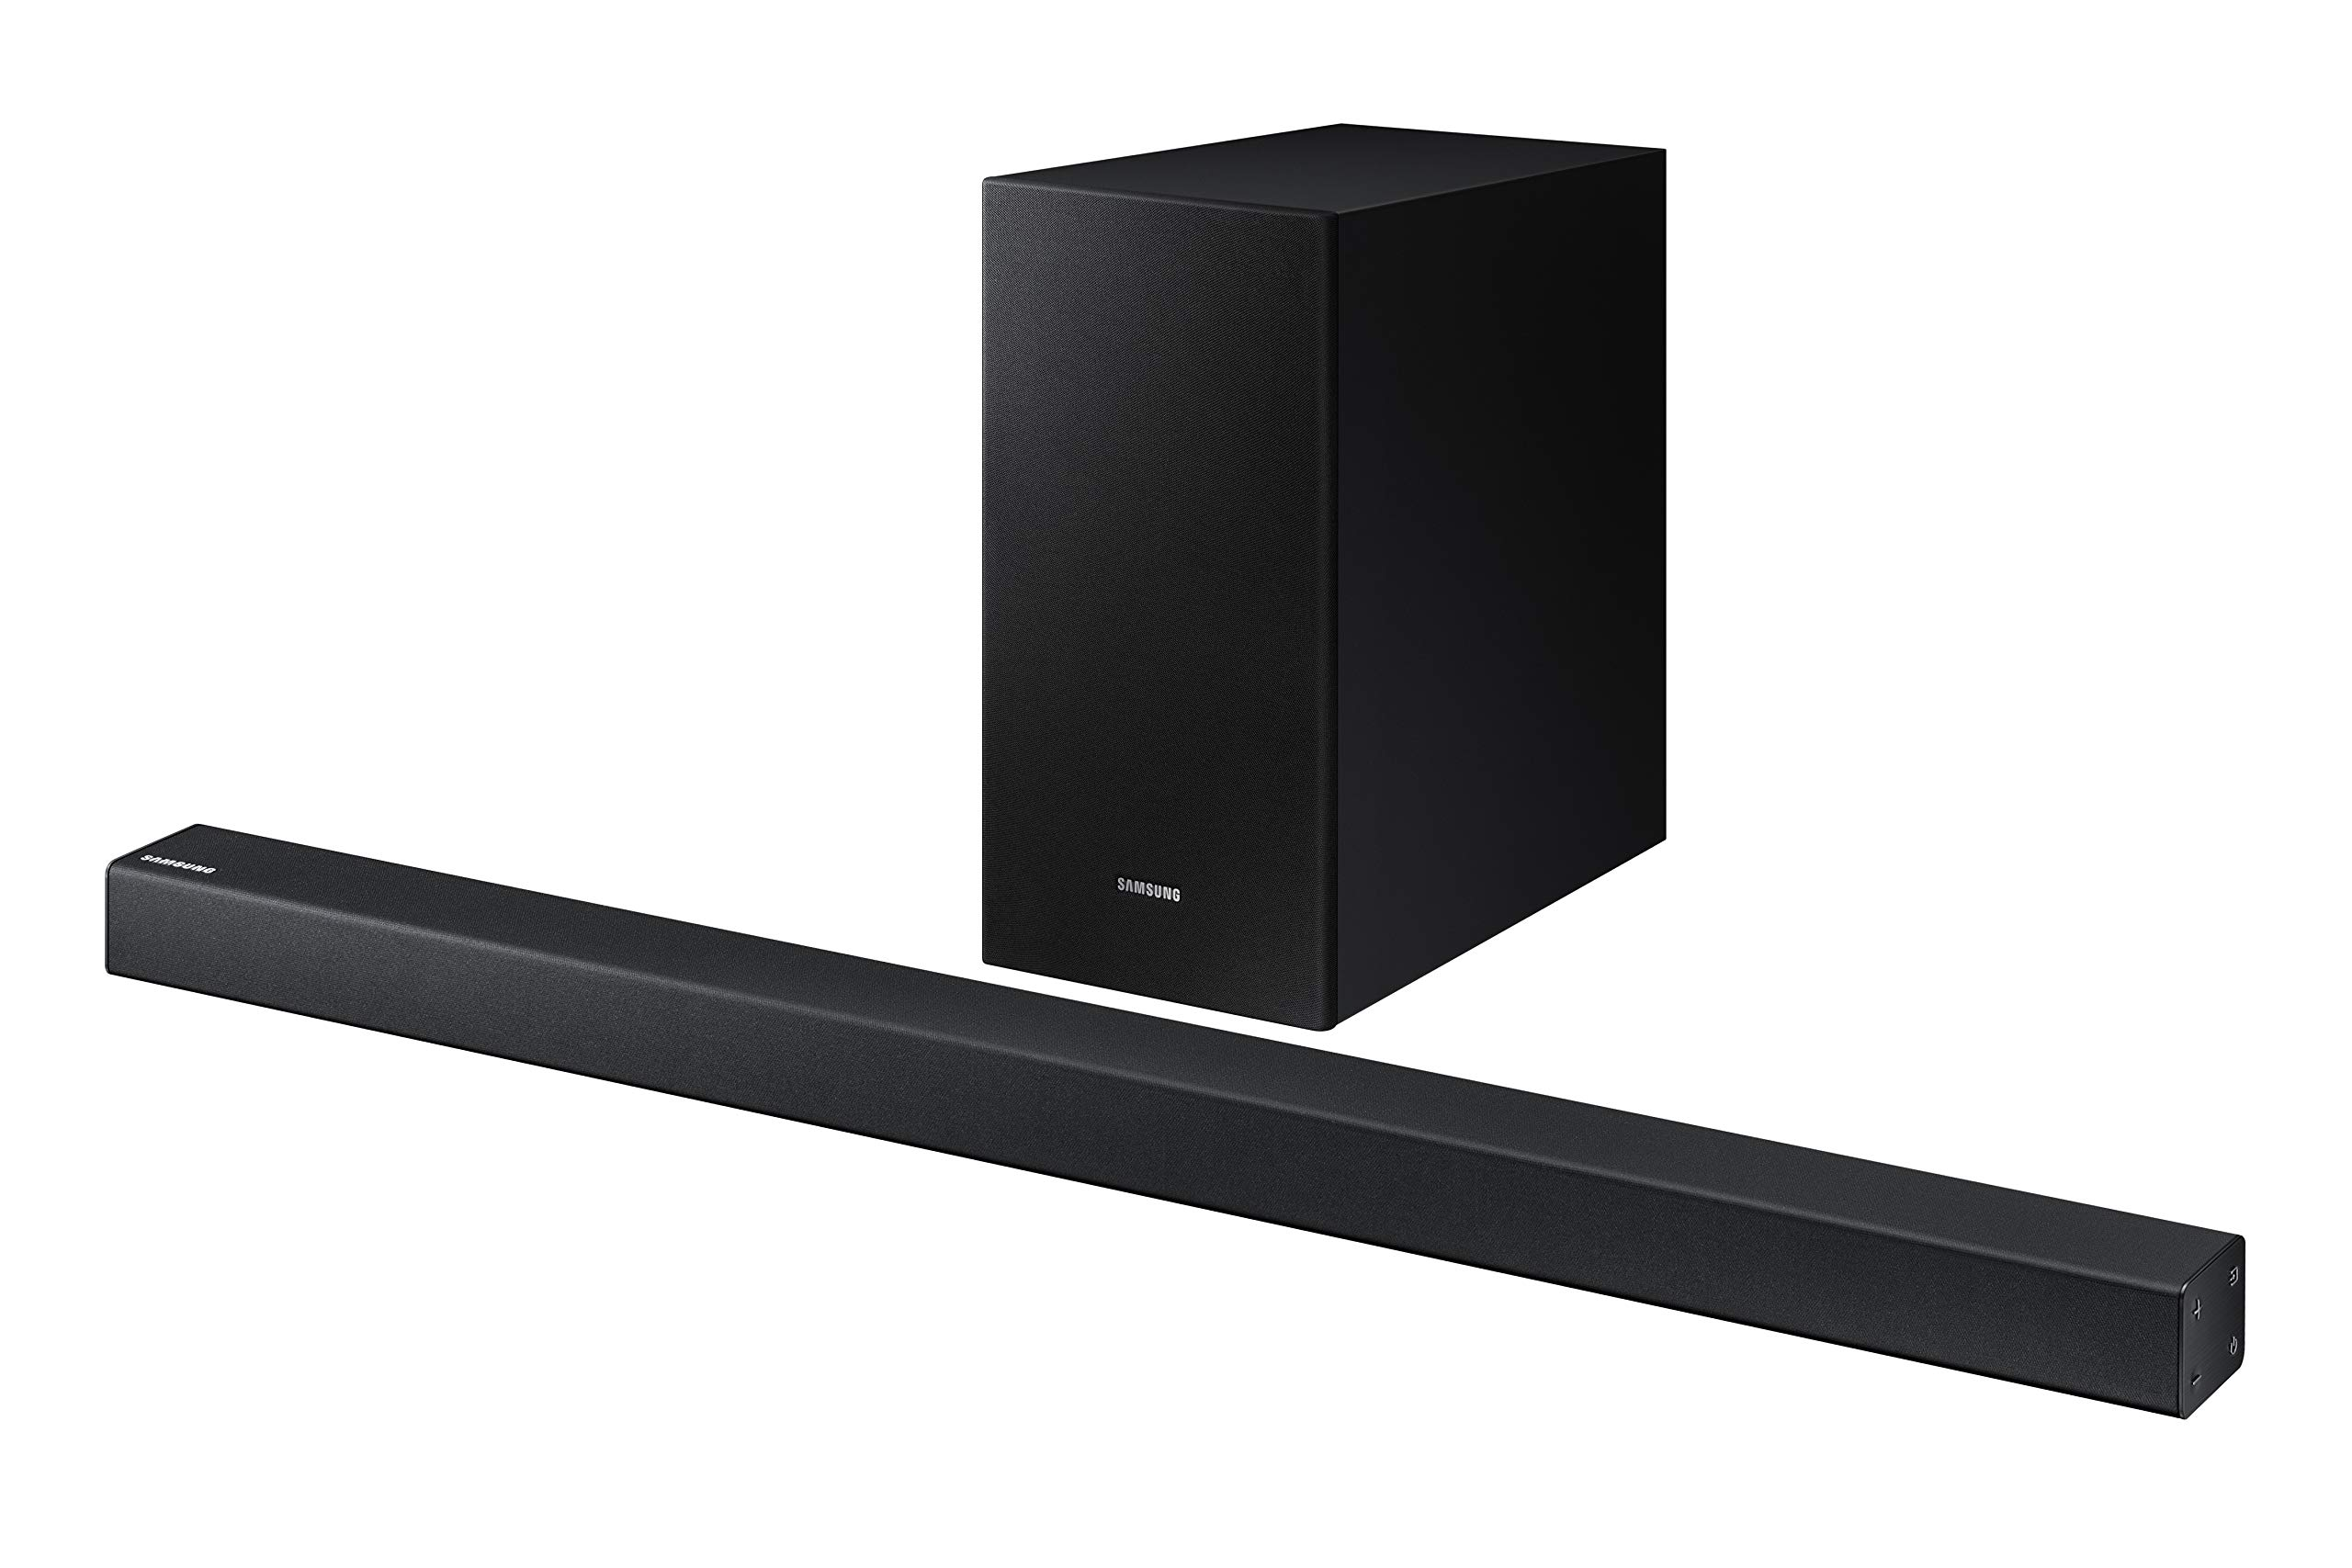 Samsung 2.1 Soundbar HW-R450 with Wireless Subwoofer, Bluetooth Compatible, Smart Sound Mode, Game Mode, 200-Watts by Samsung